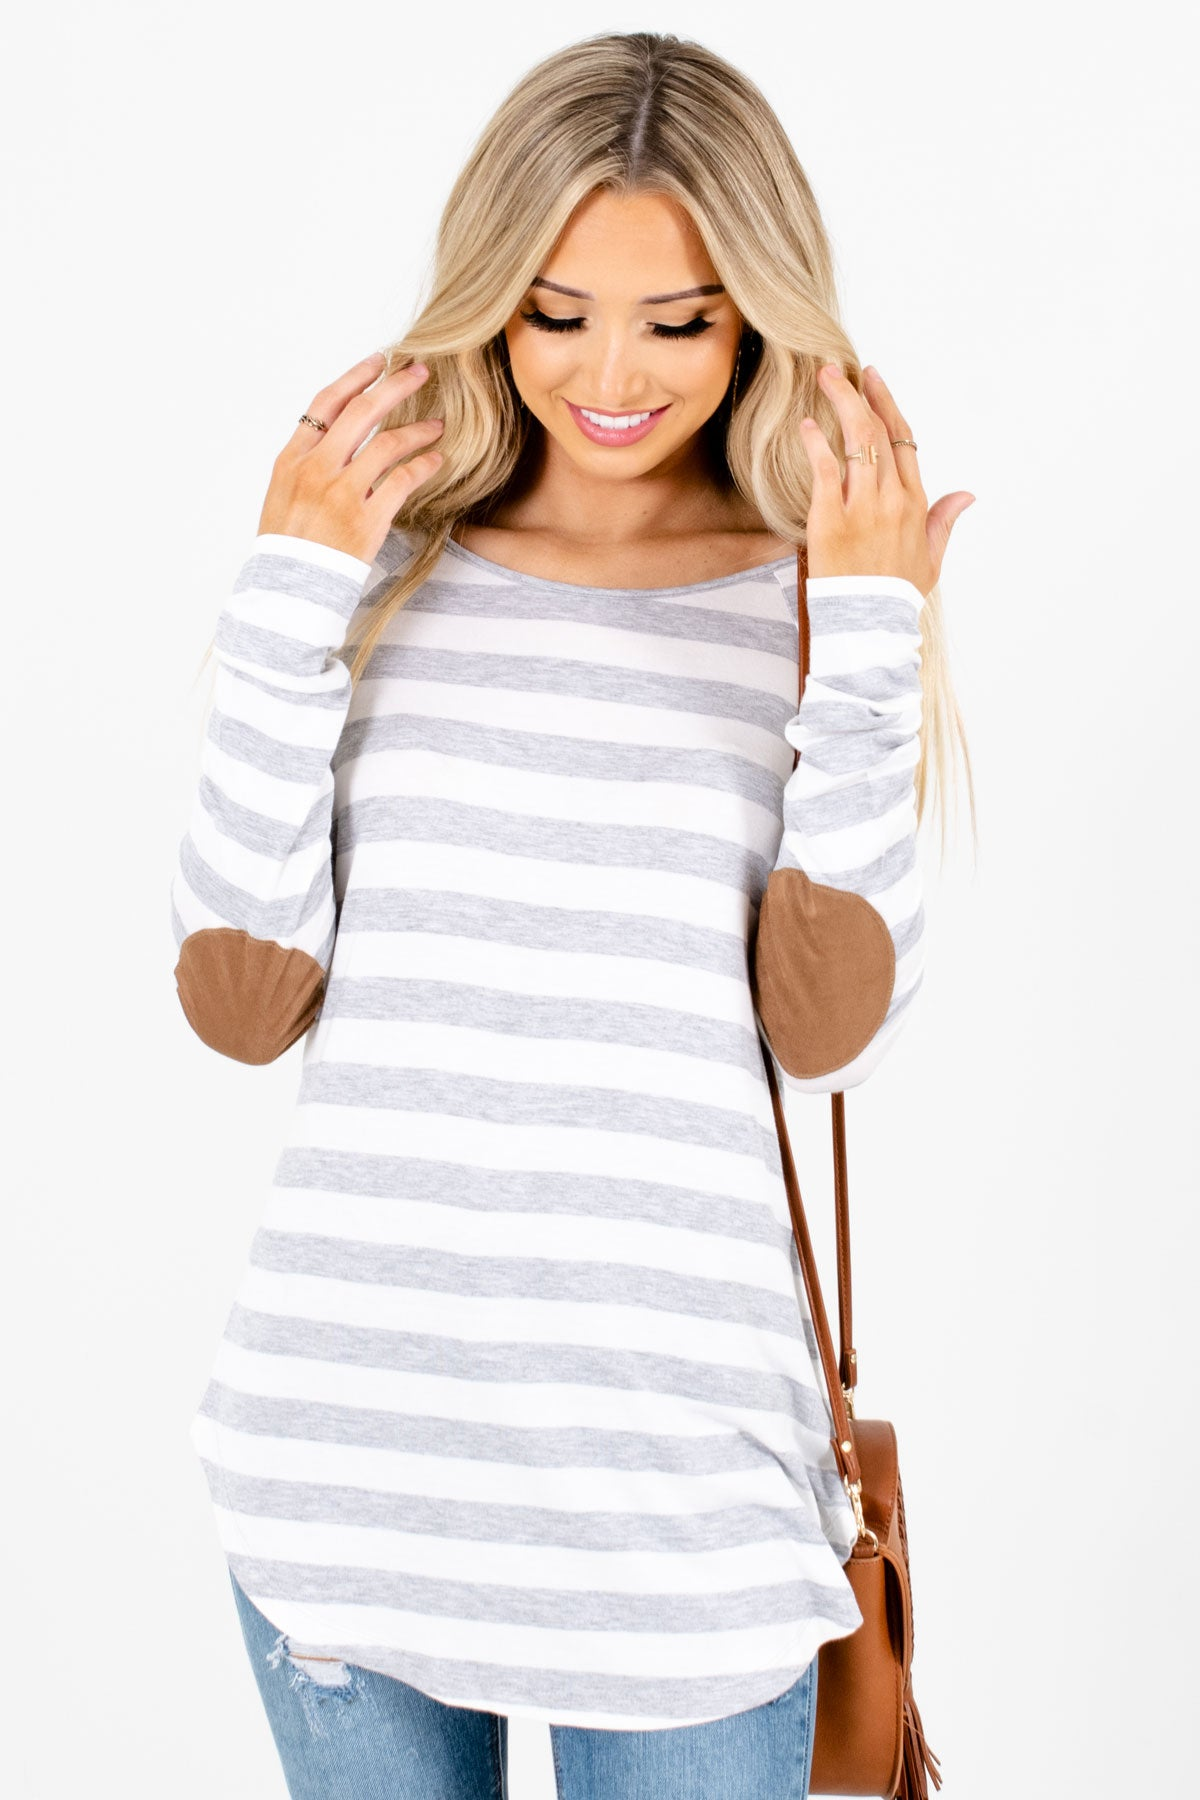 Gray and White Stripe Patterned Boutique Tops for Women